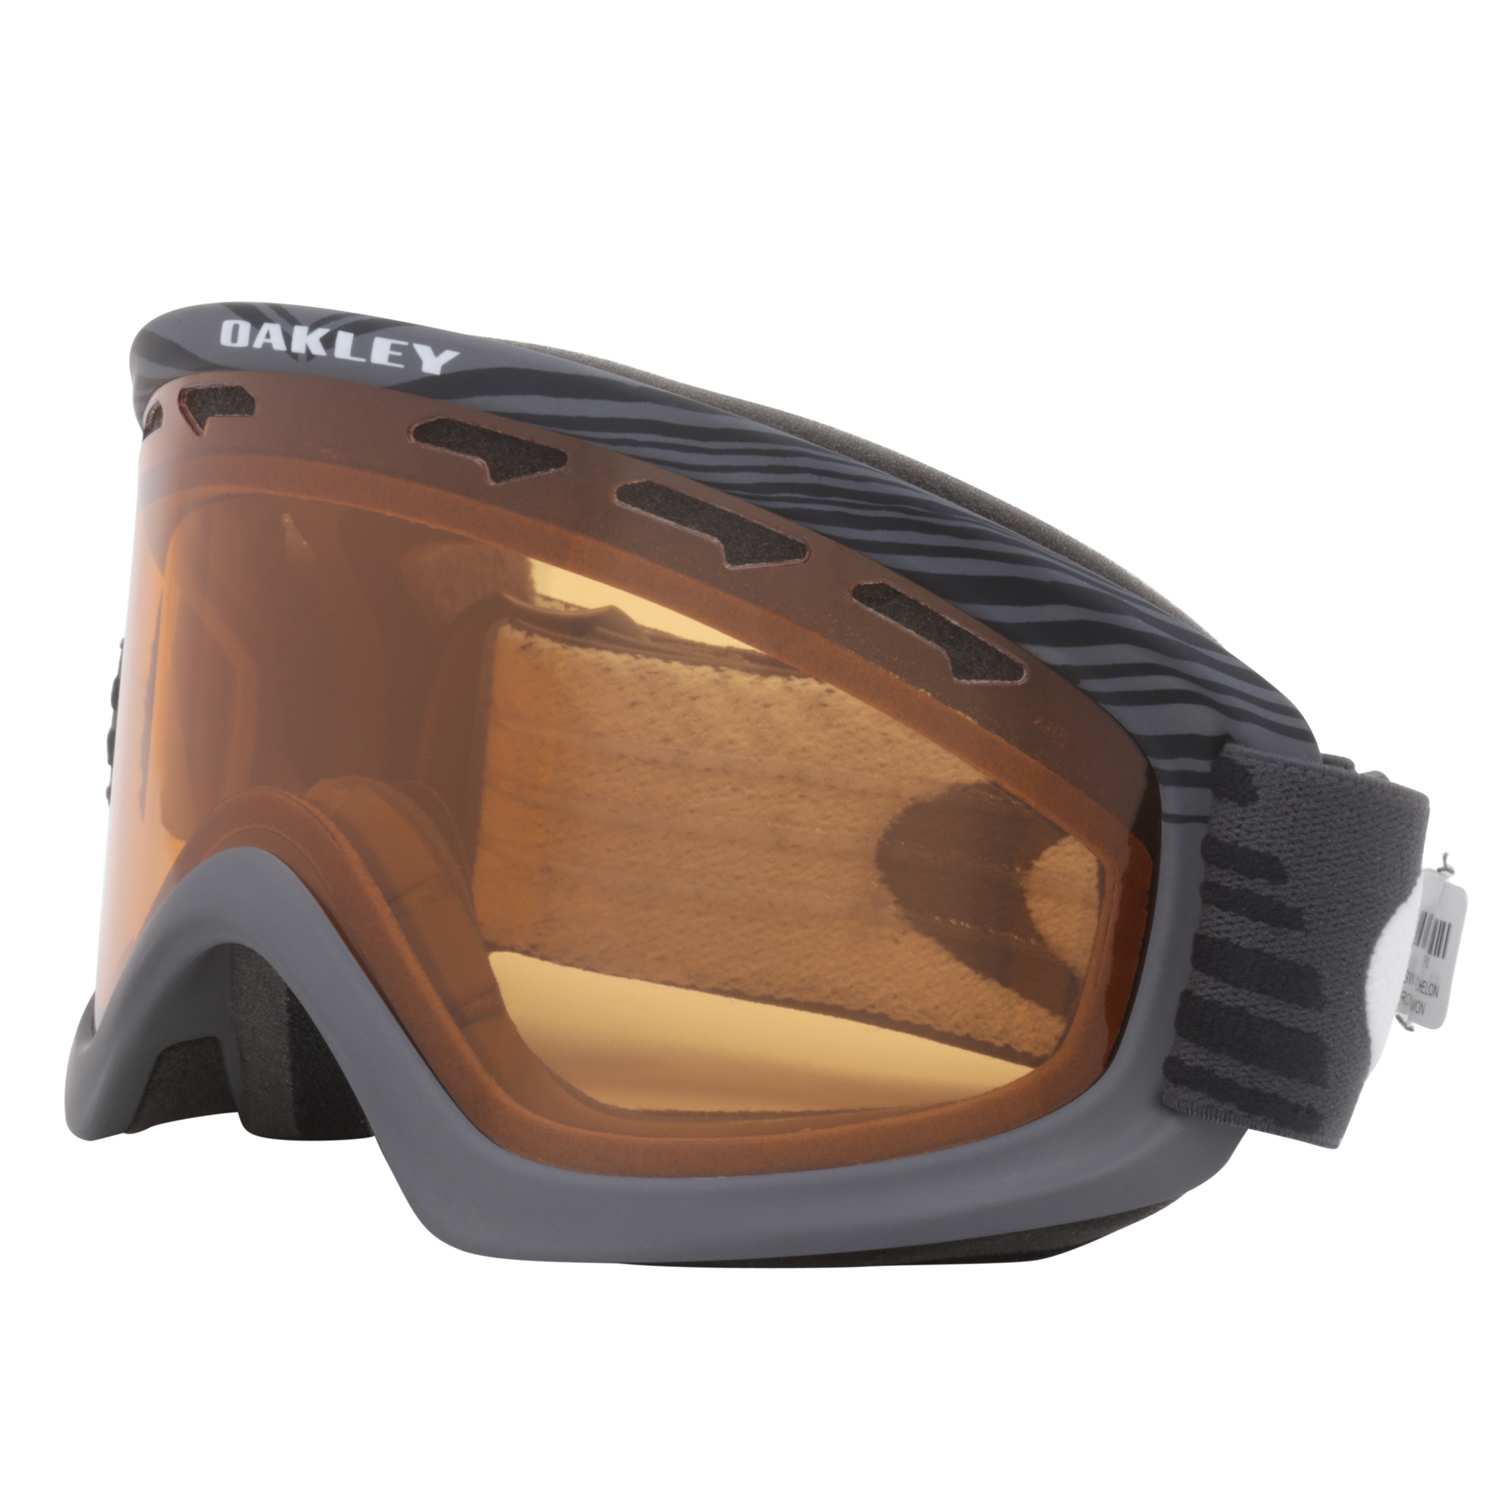 a2121d416f Details about Oakley O Frame 2.0 XS Snow Shaun White Signature Series  Goggles Jet Black